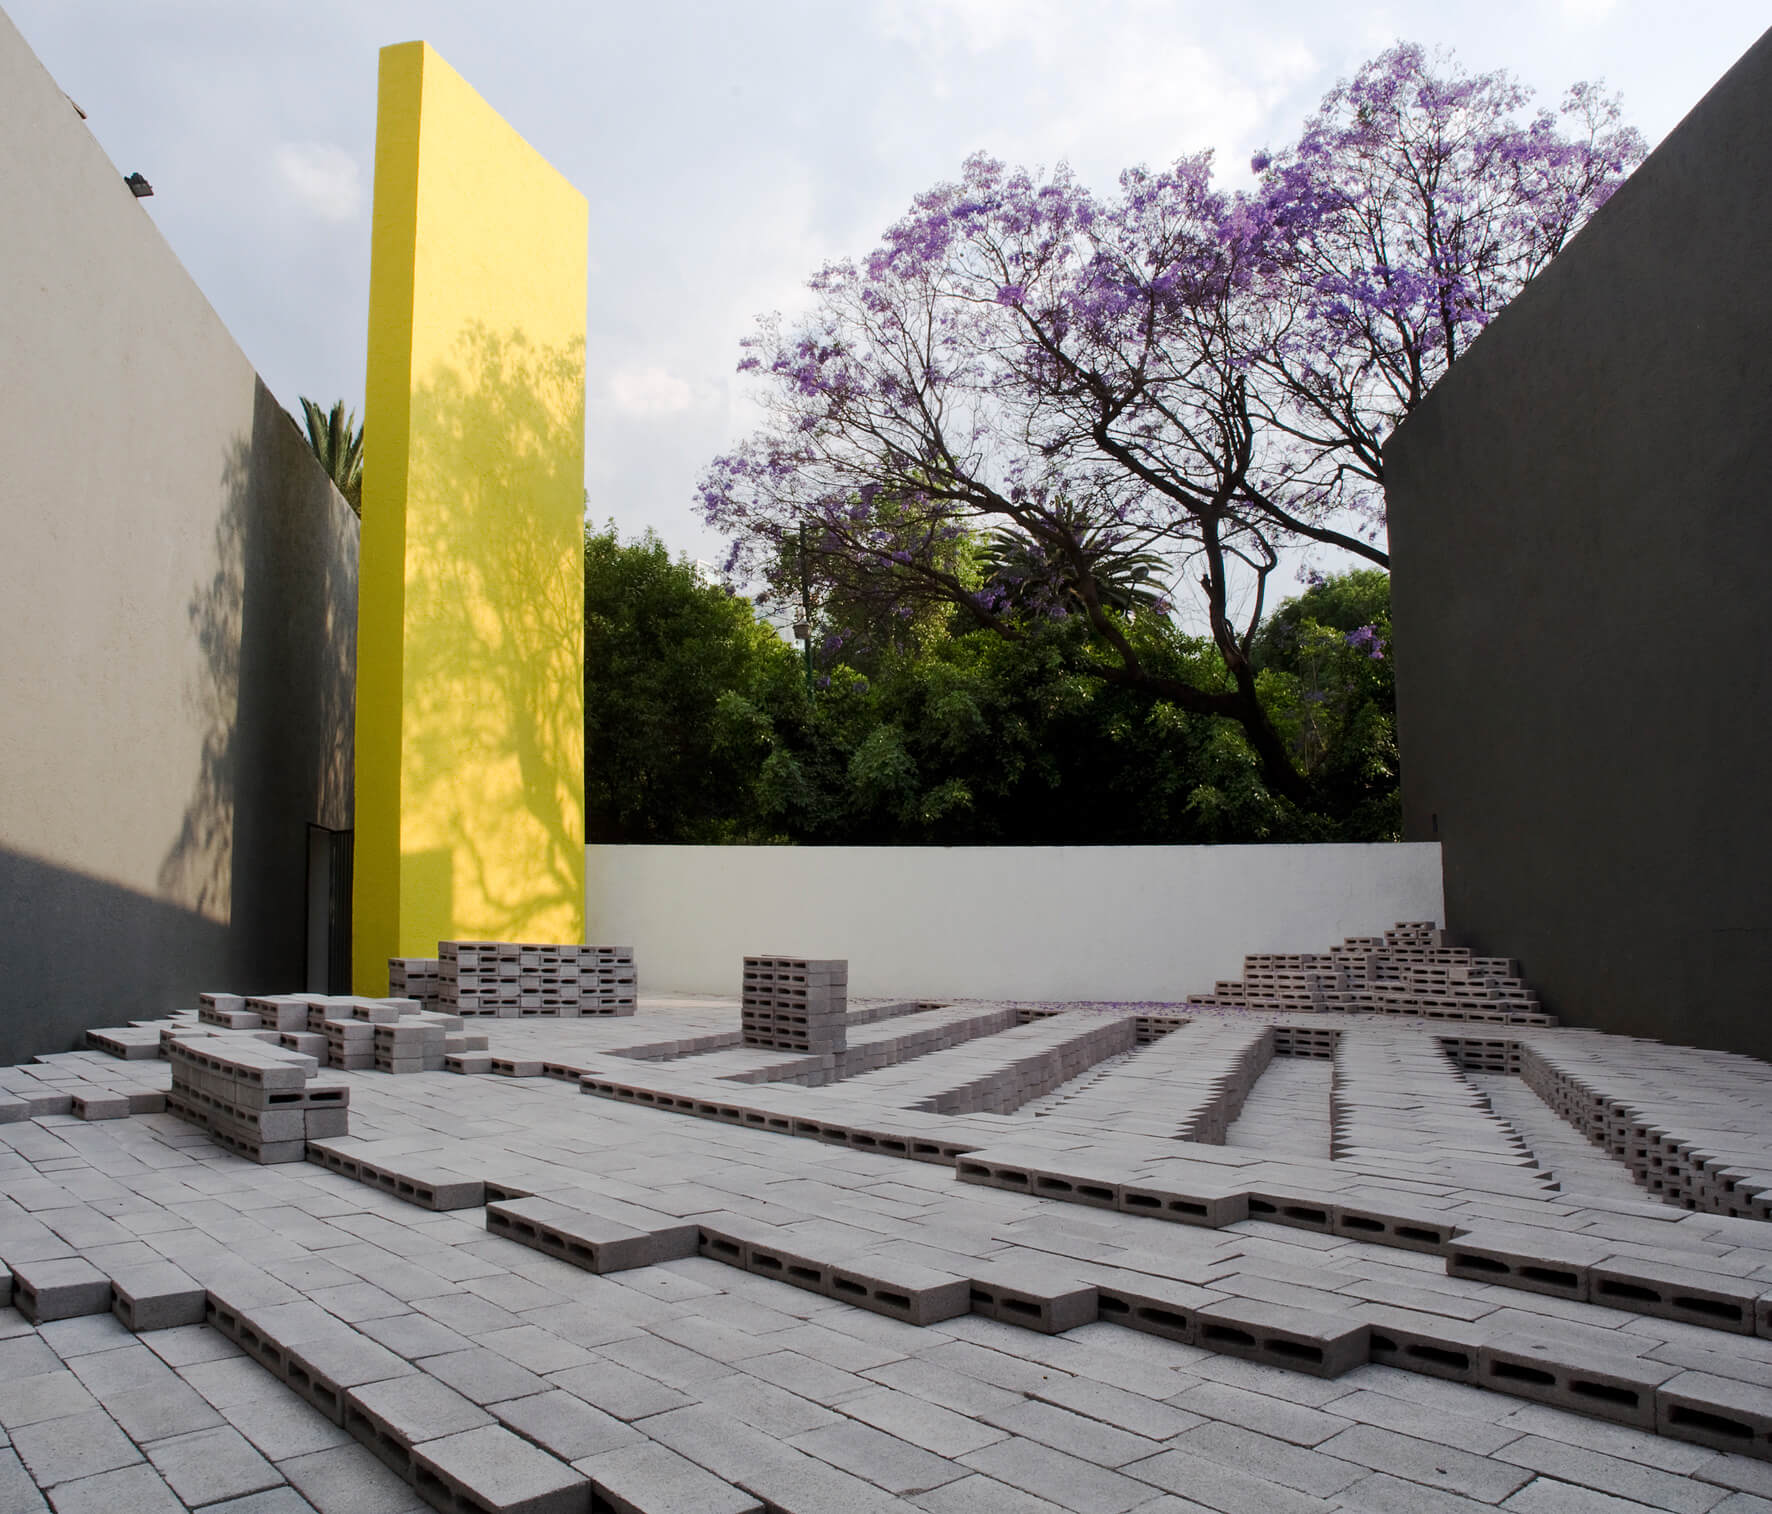 Pabellón Eco by Frida Escobedo | STIRrring Conversations: Frida Escobedo x Arik Levy | STIRworld